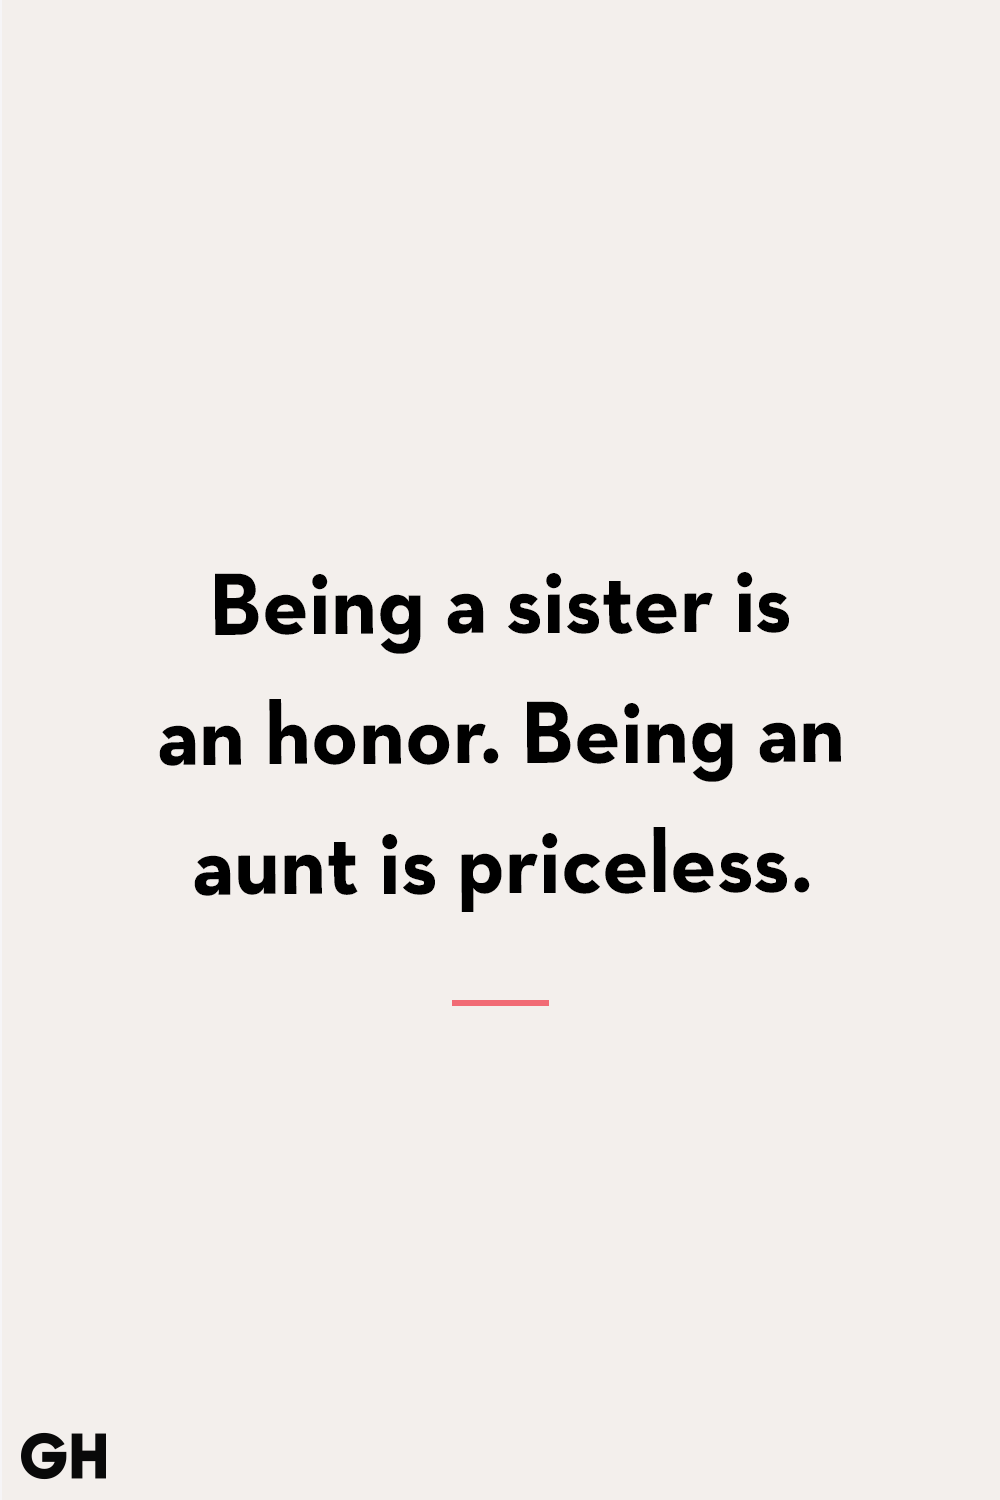 Quotes About Being An Aunt | Quotes - bikekoeriertilburg